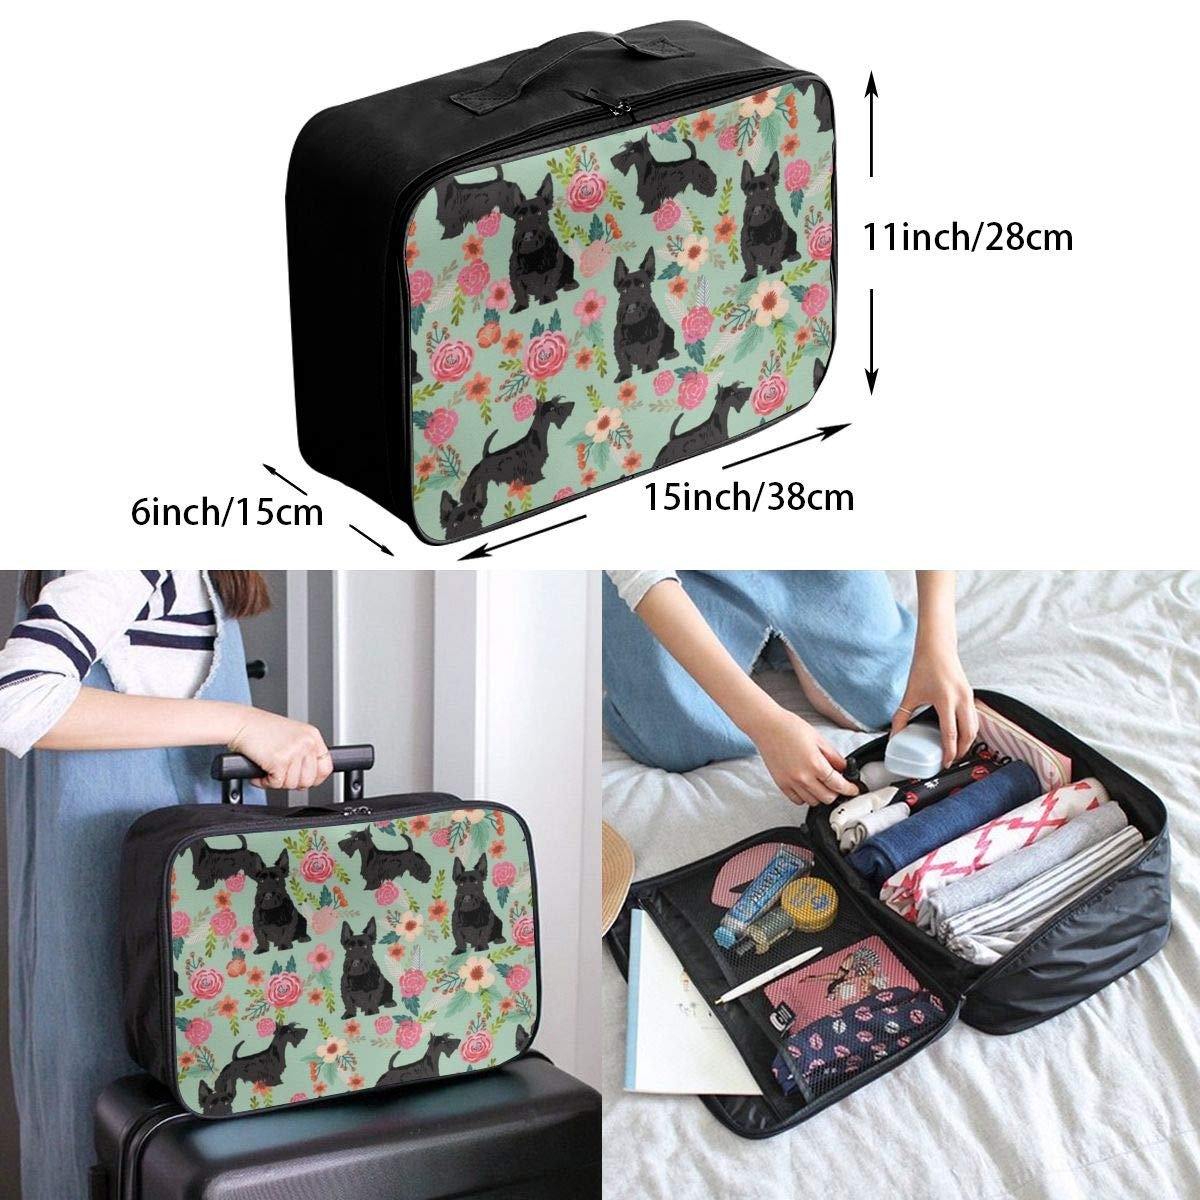 Luggage Duffel Bag Black USA Flag Lightweight Waterproof Storage Carry On Travel Duffle Tote Bag Gift for Boys Girls